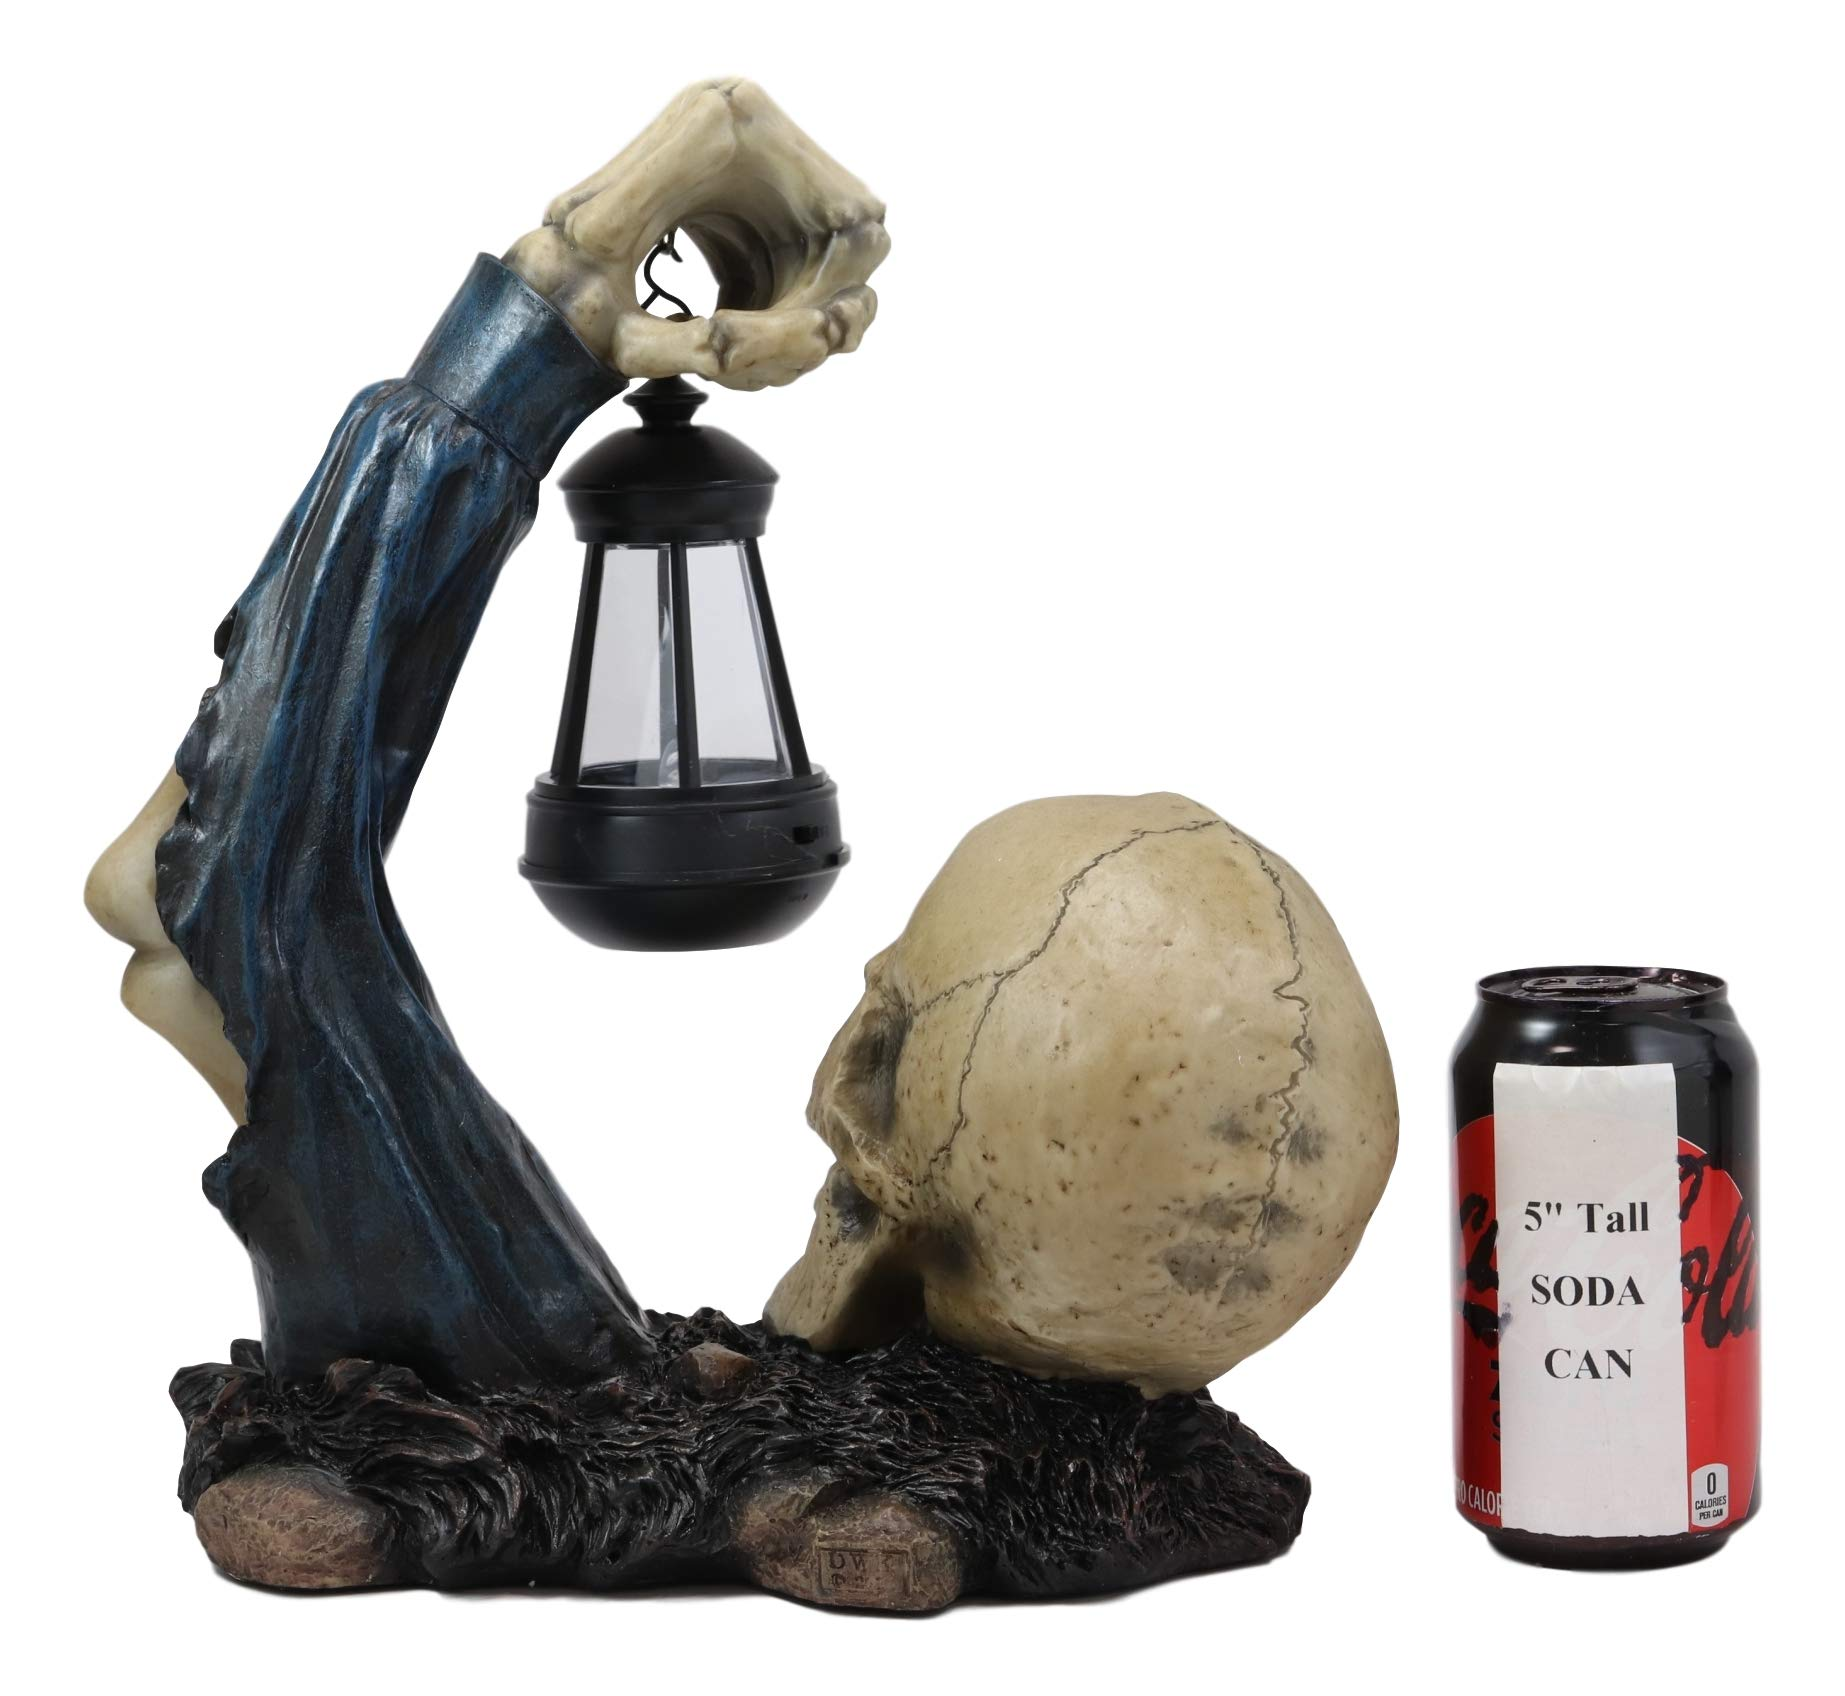 Ebros Gift Death Hallows Skeleton Rising from The Grave Holding Solar Powered Lantern LED Light Patio Decor Figurine Statue Halloween Ossuary Macabre Patio Path Lighter Courtesy Lamp Sculpture by Ebros Gift